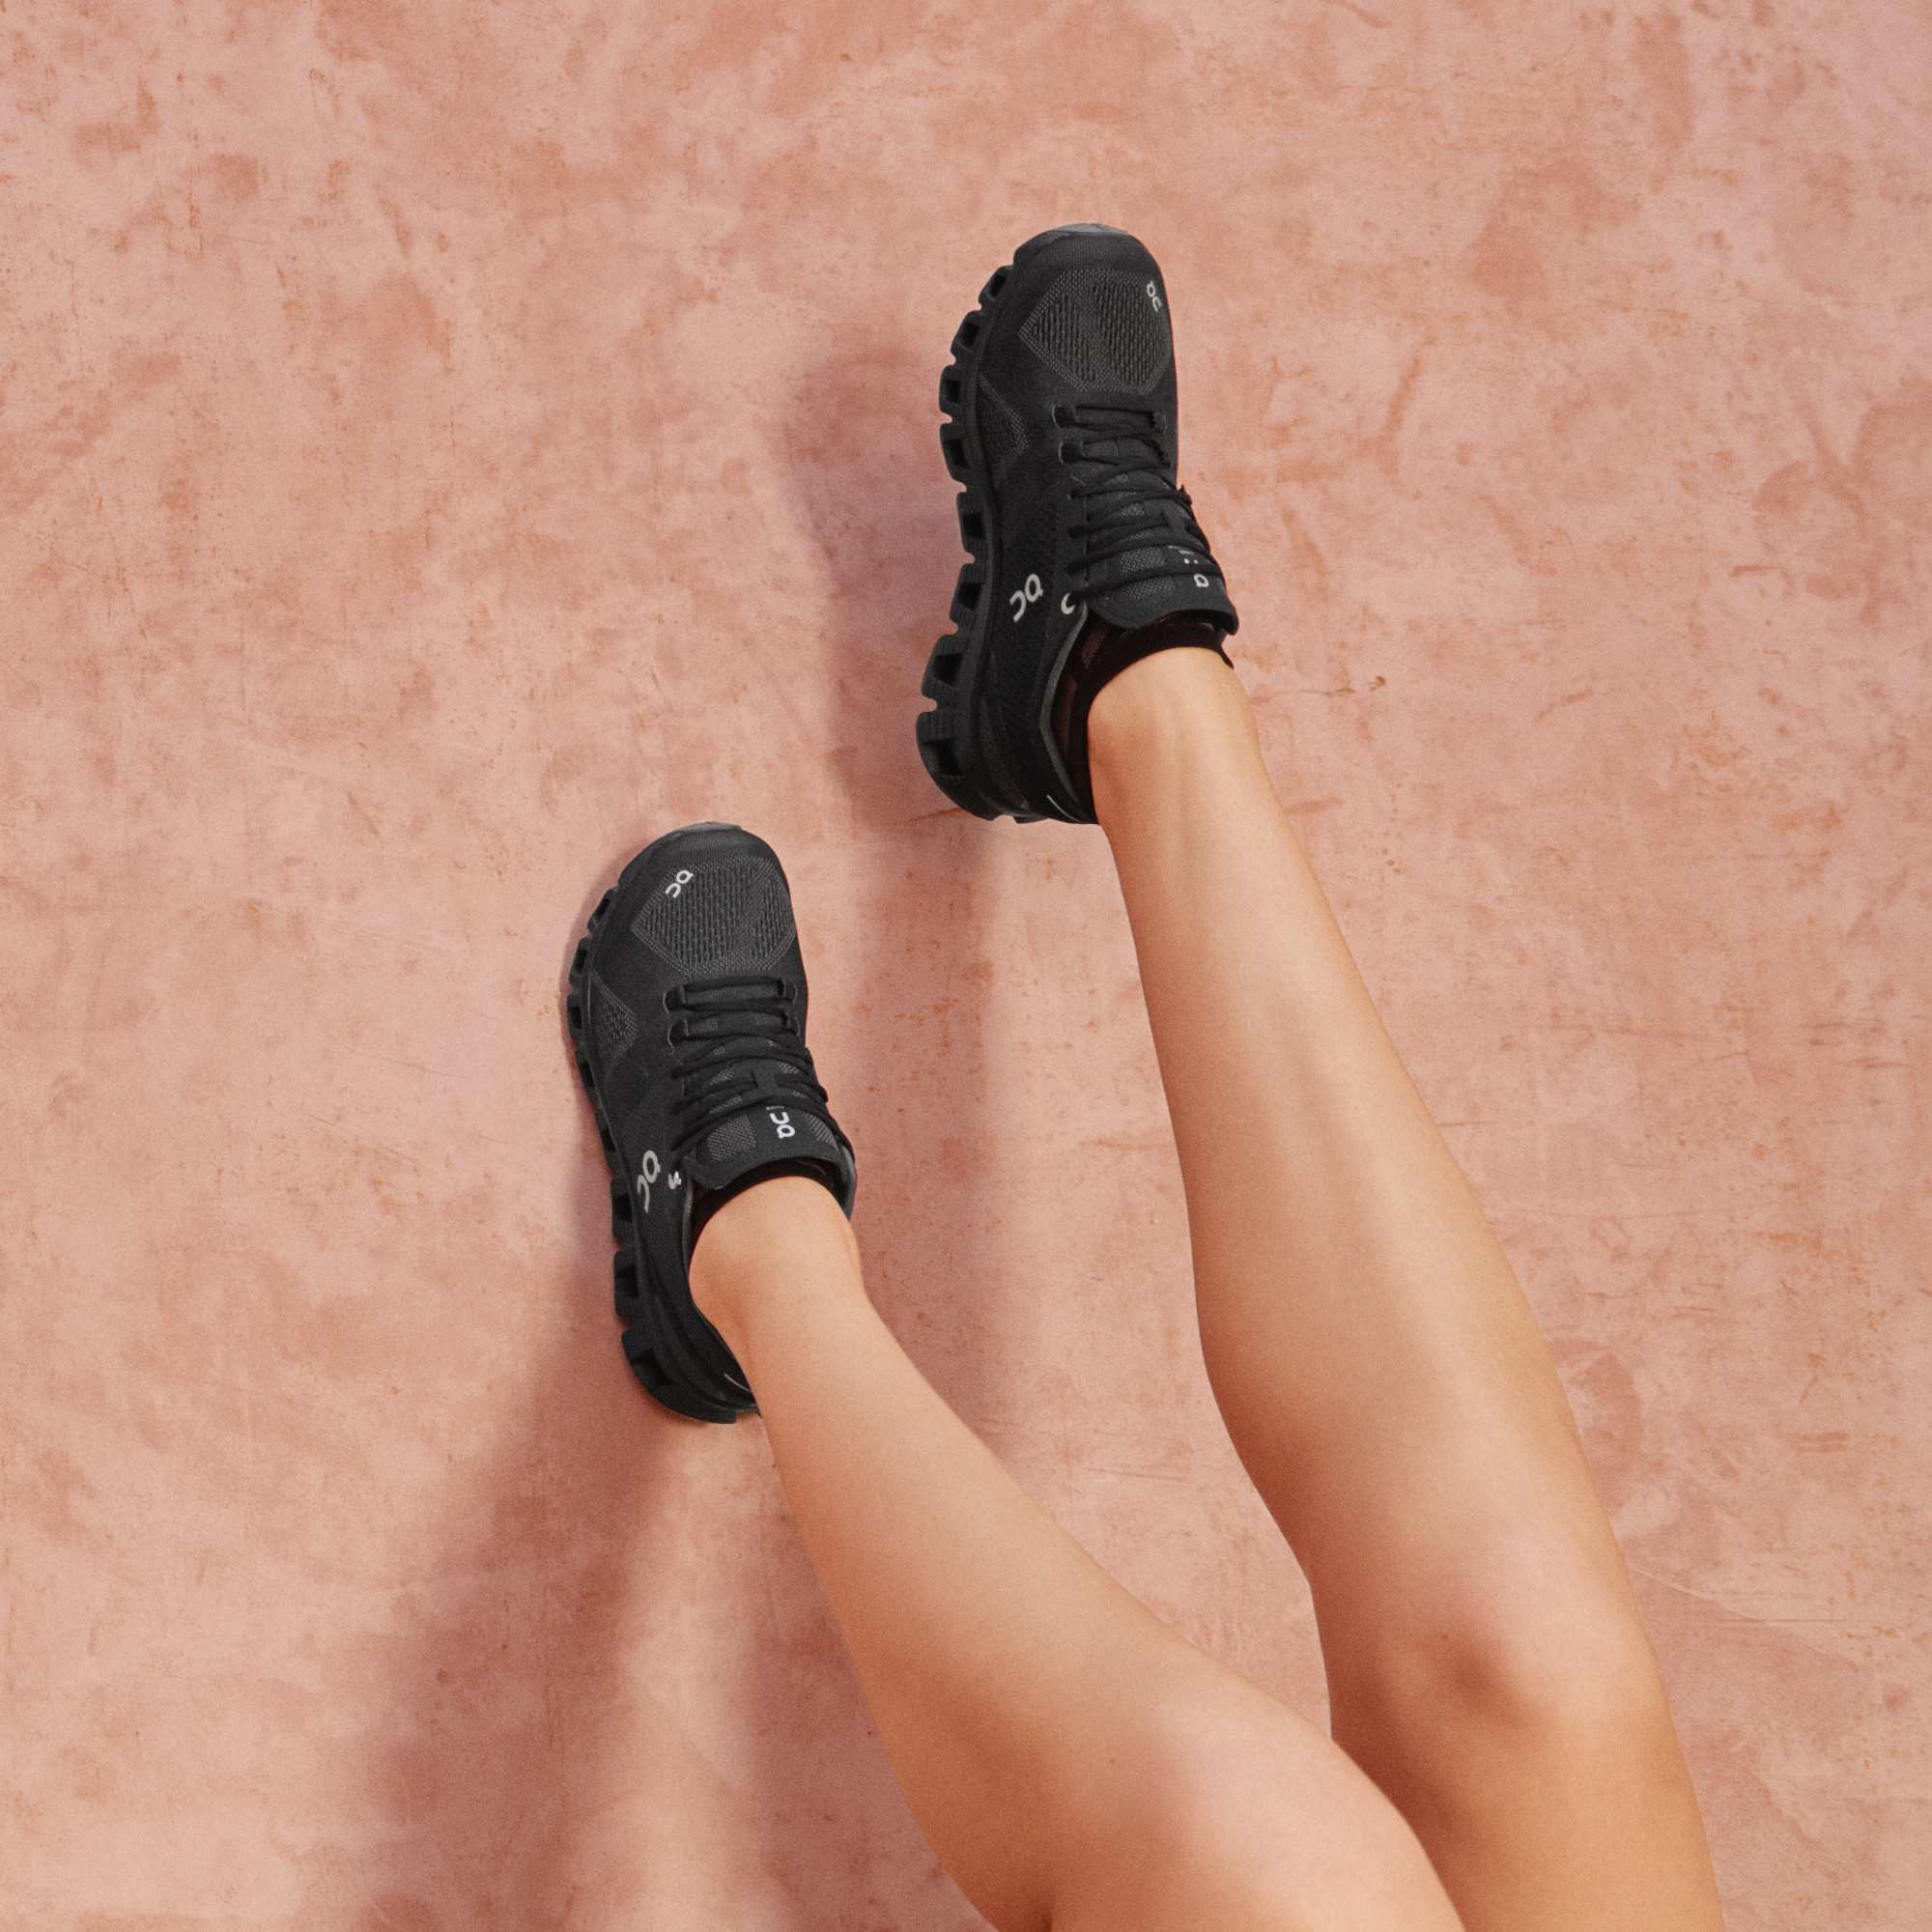 Workout and Cross Training Shoe